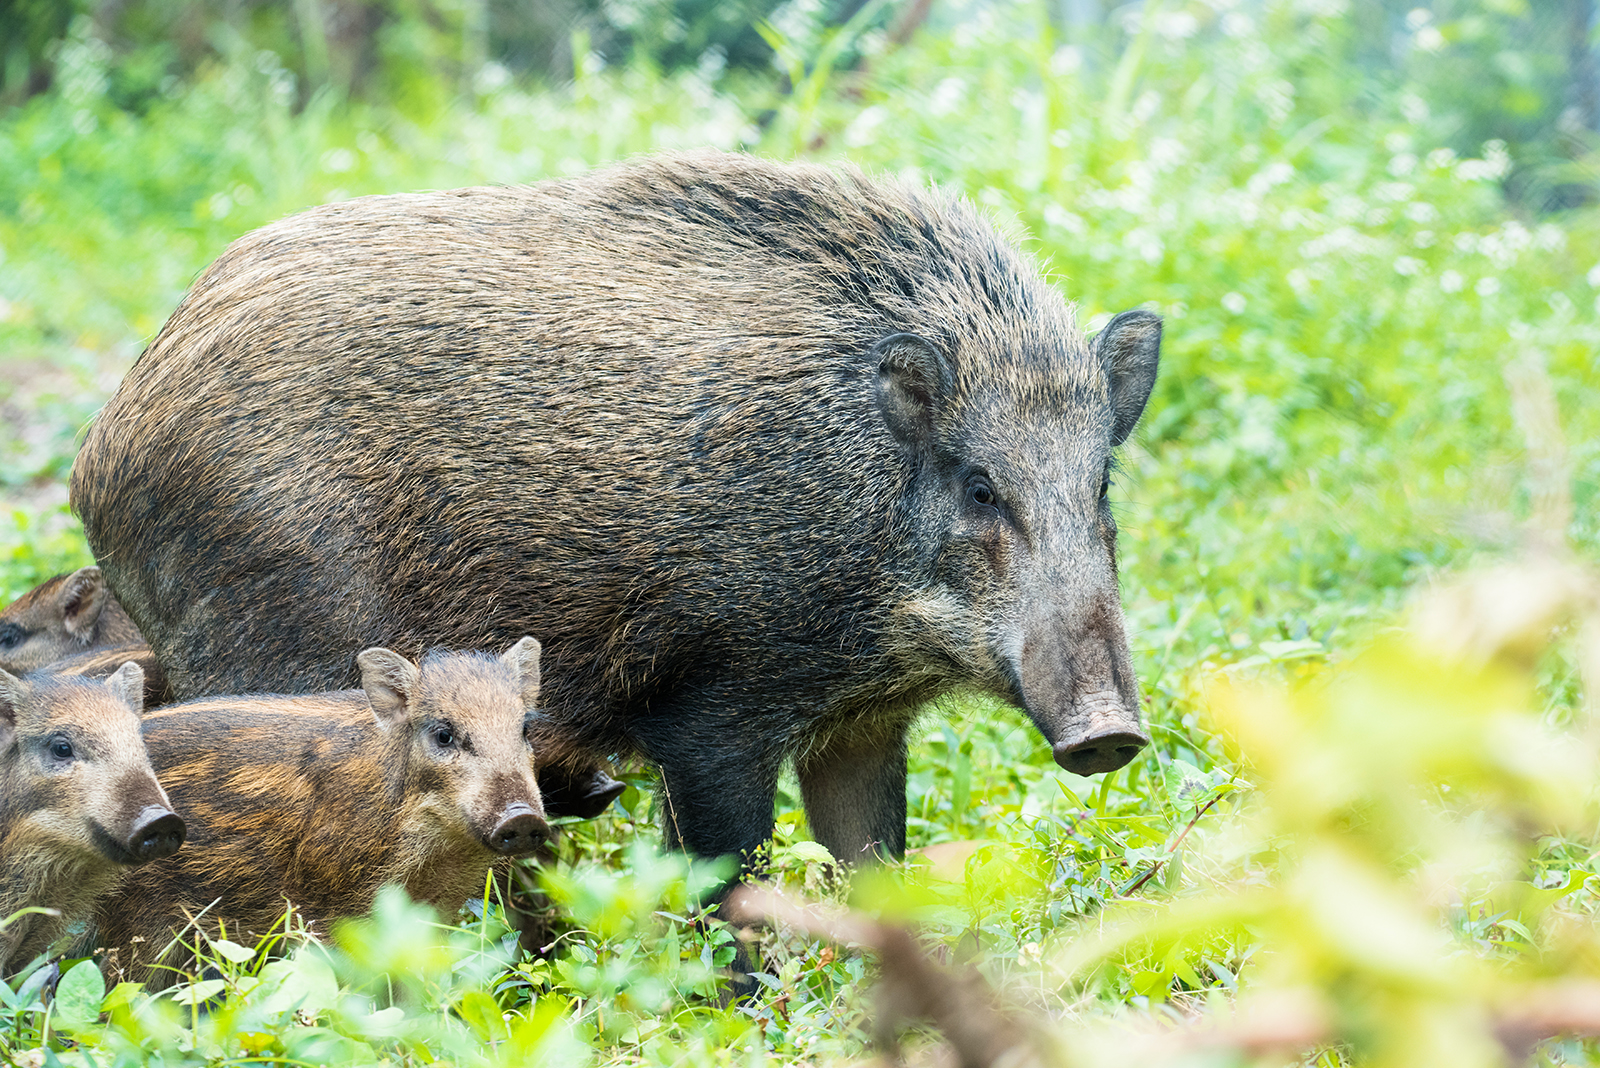 Wild boar family: Samples and Galleries Forum: Digital